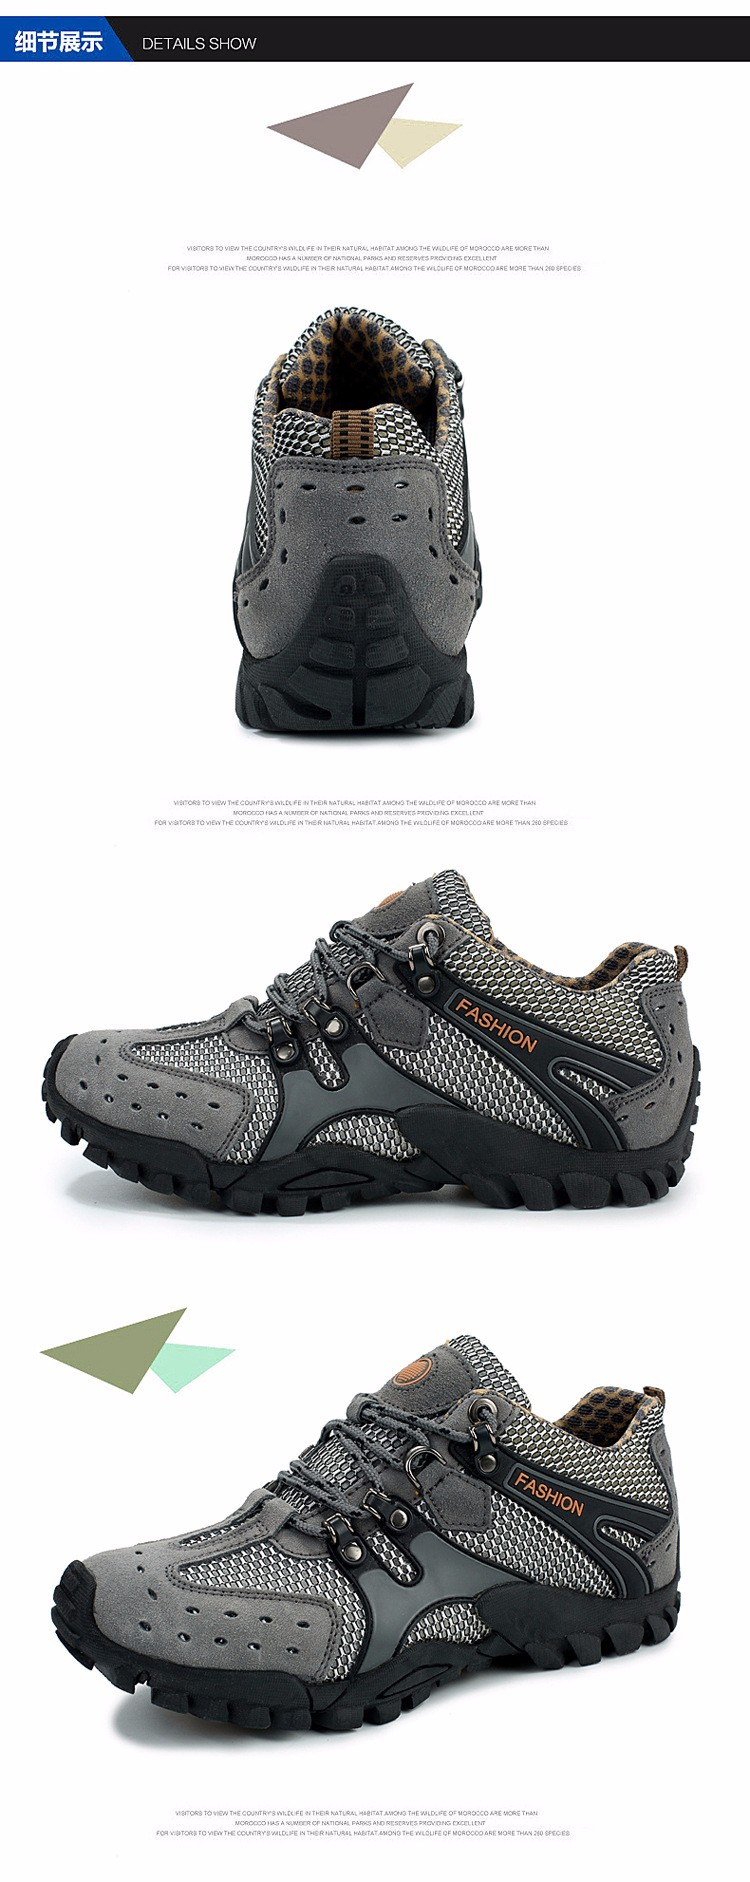 Outdoor Breathable Shoes Men Lightweight Walking Climbing Shoes Anti-skid Men Aqua Water Trekking Shoes Men (20)